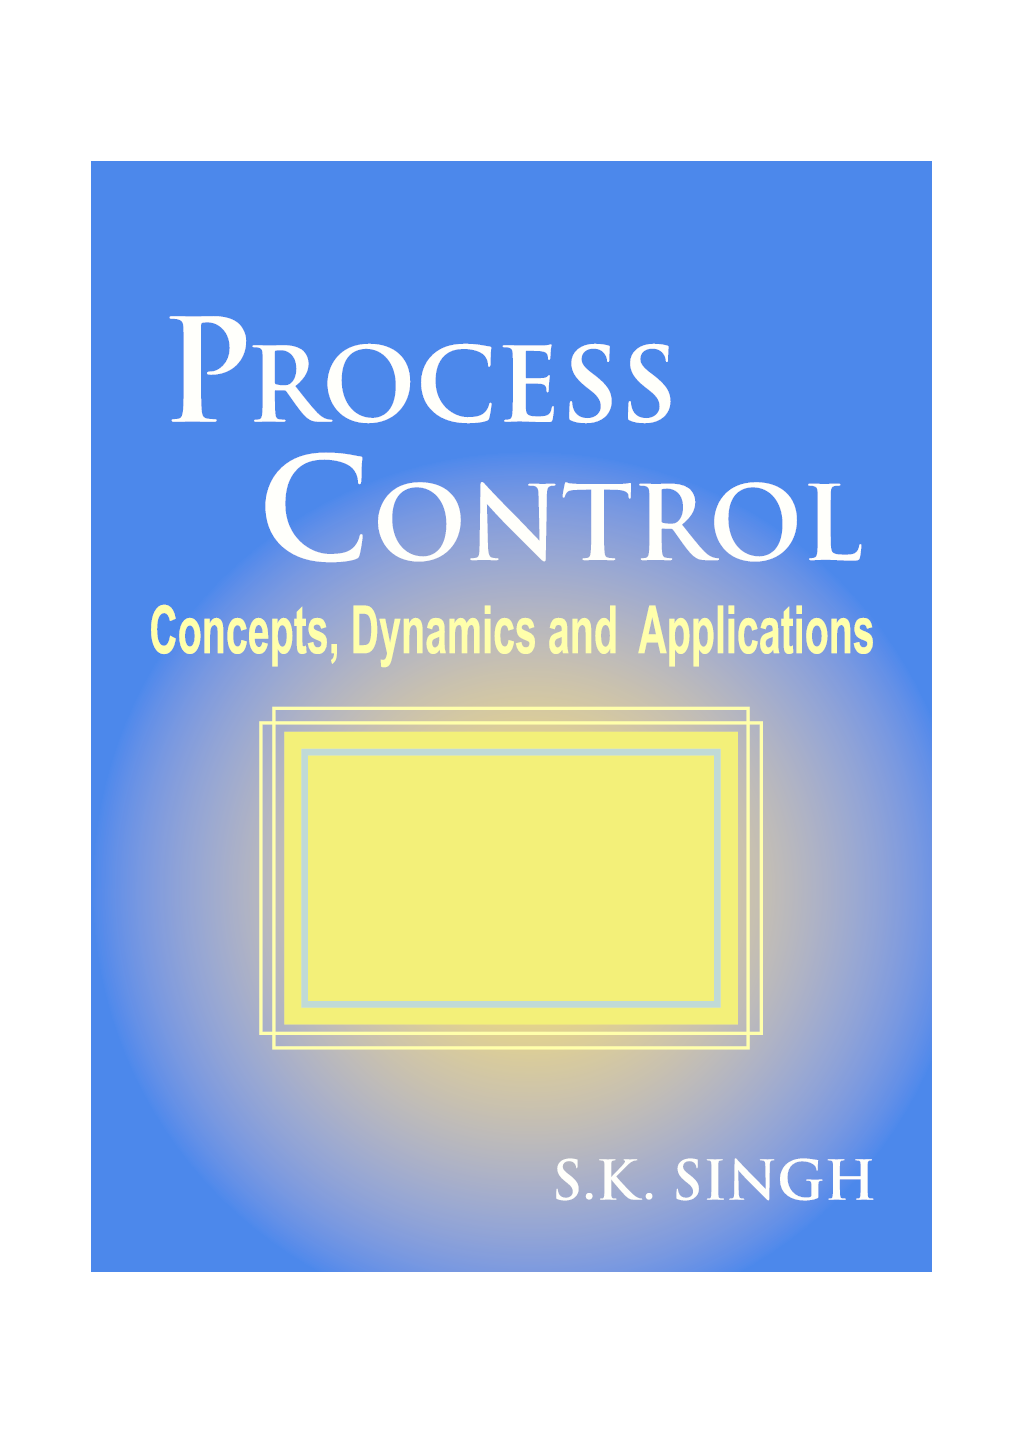 process control concepts dynamics and applications pdf